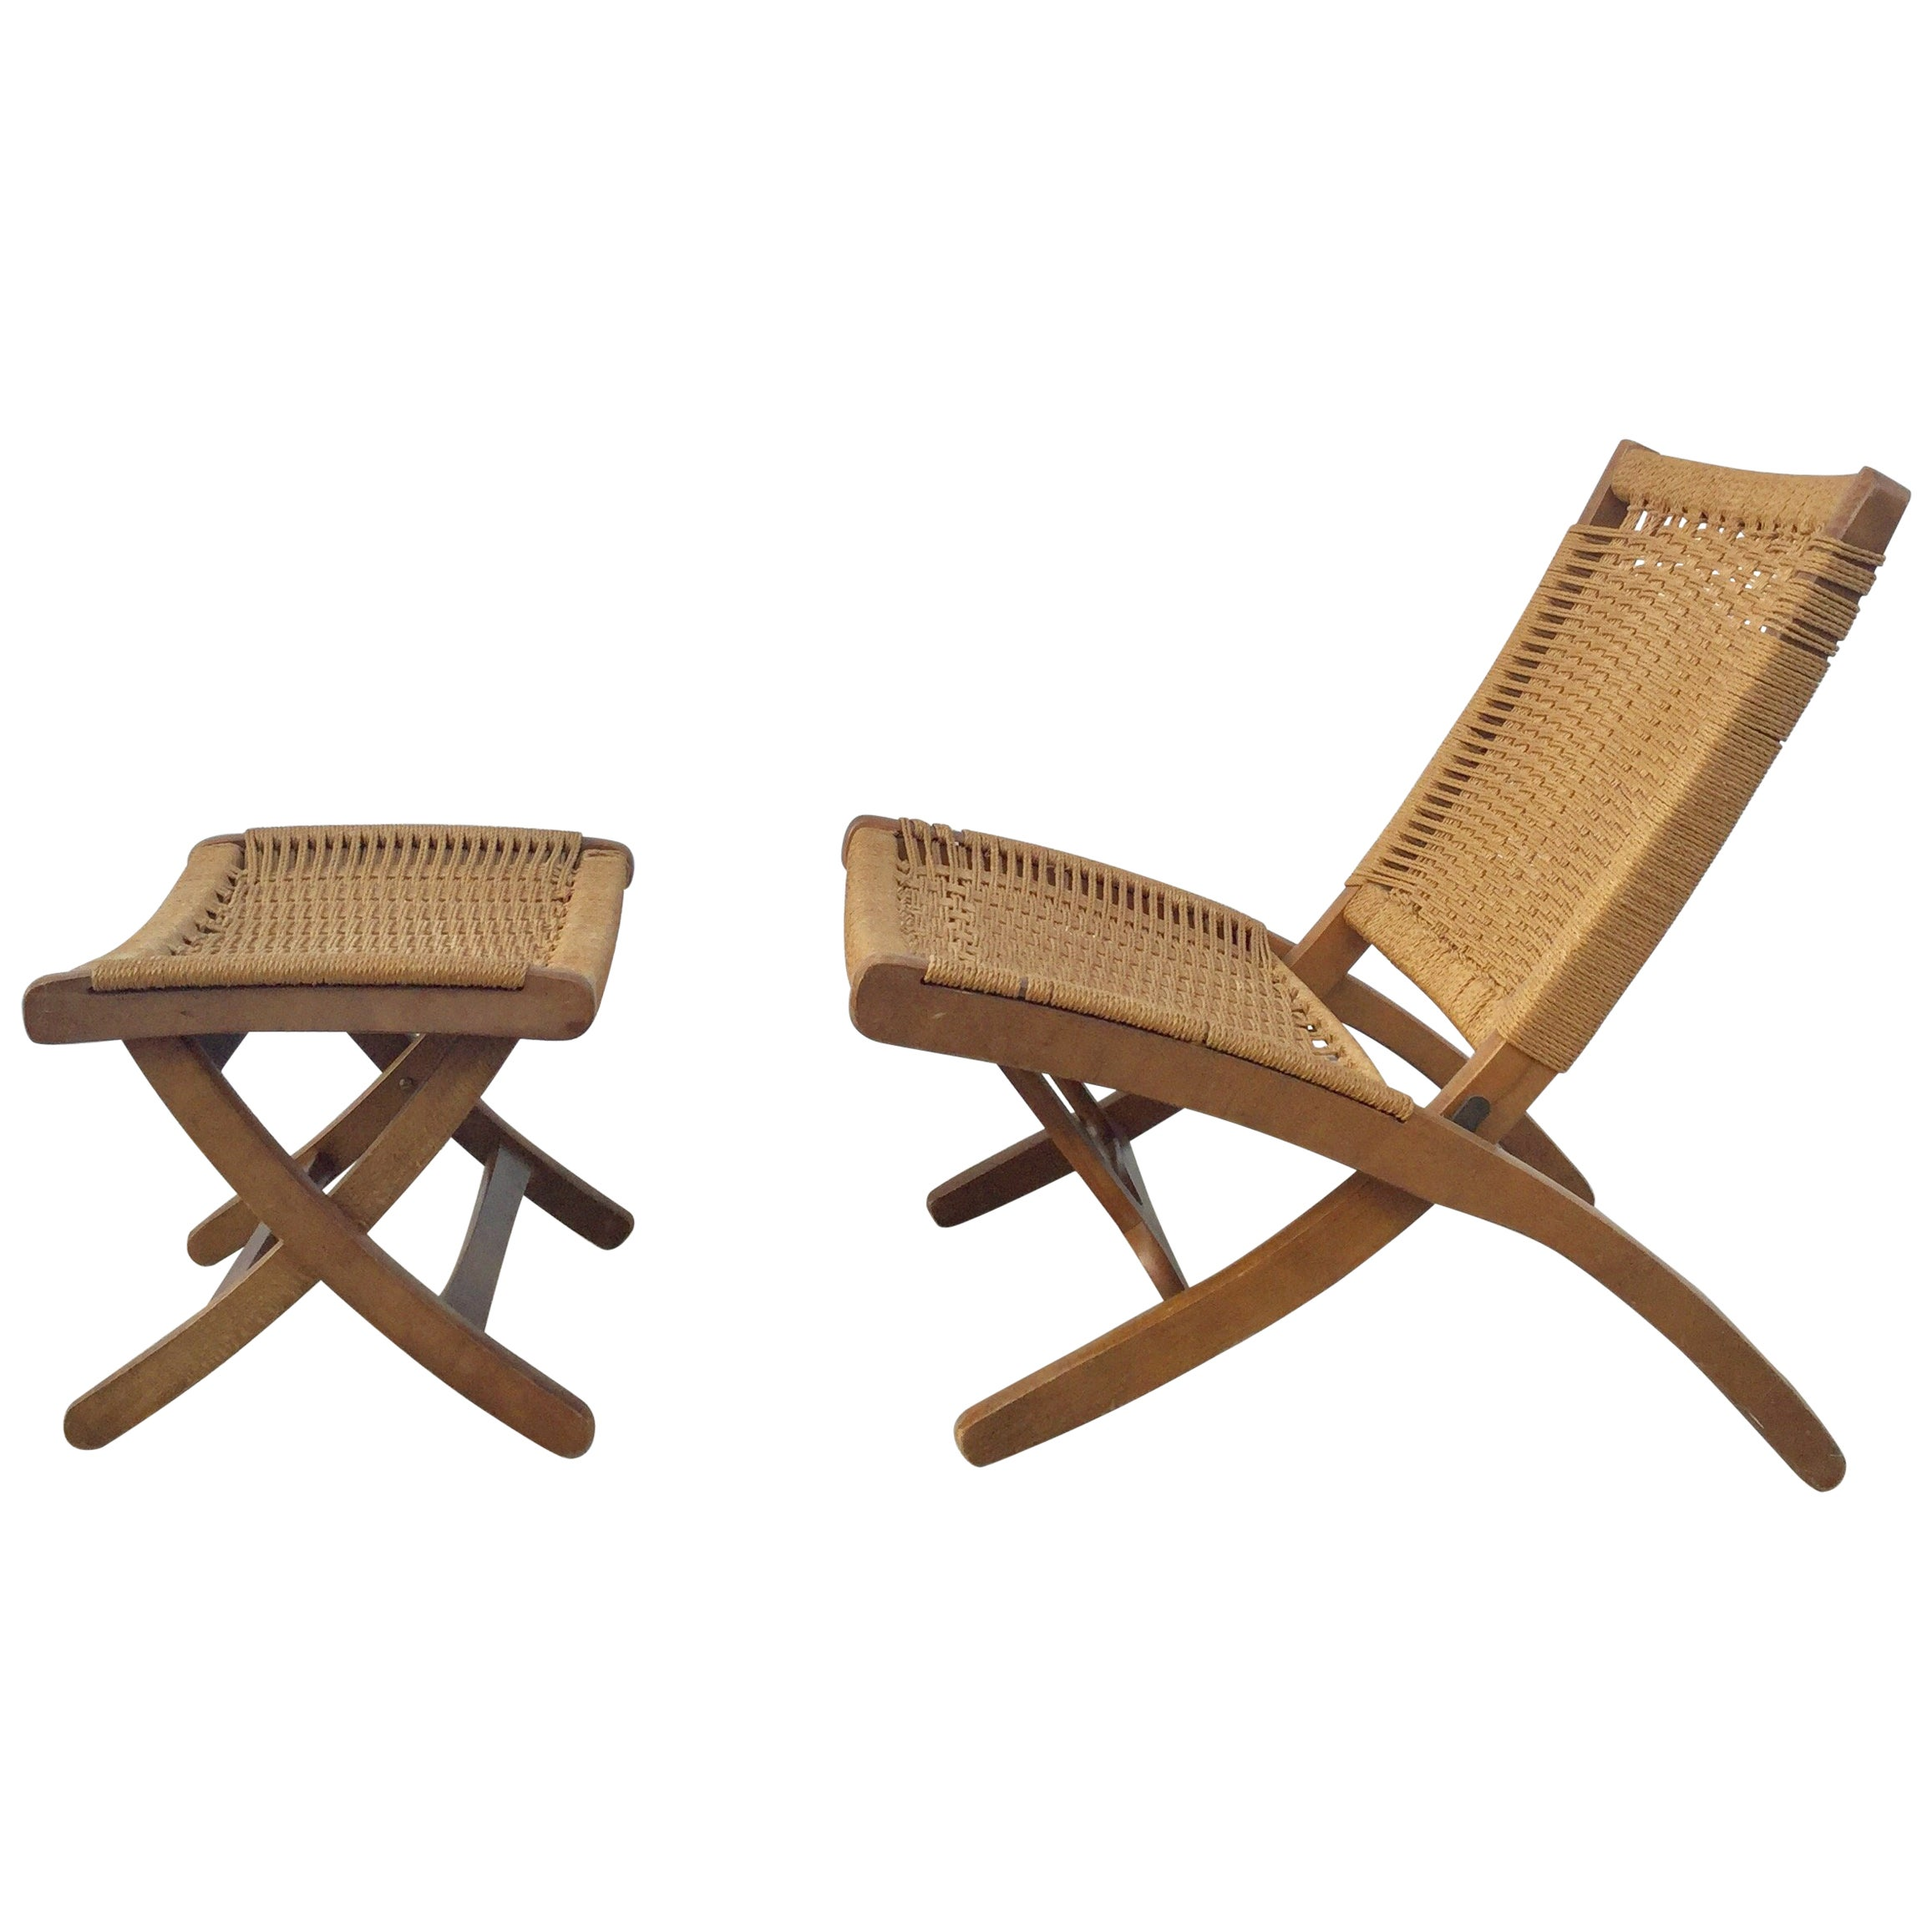 Woven Folding Chair and Ottoman